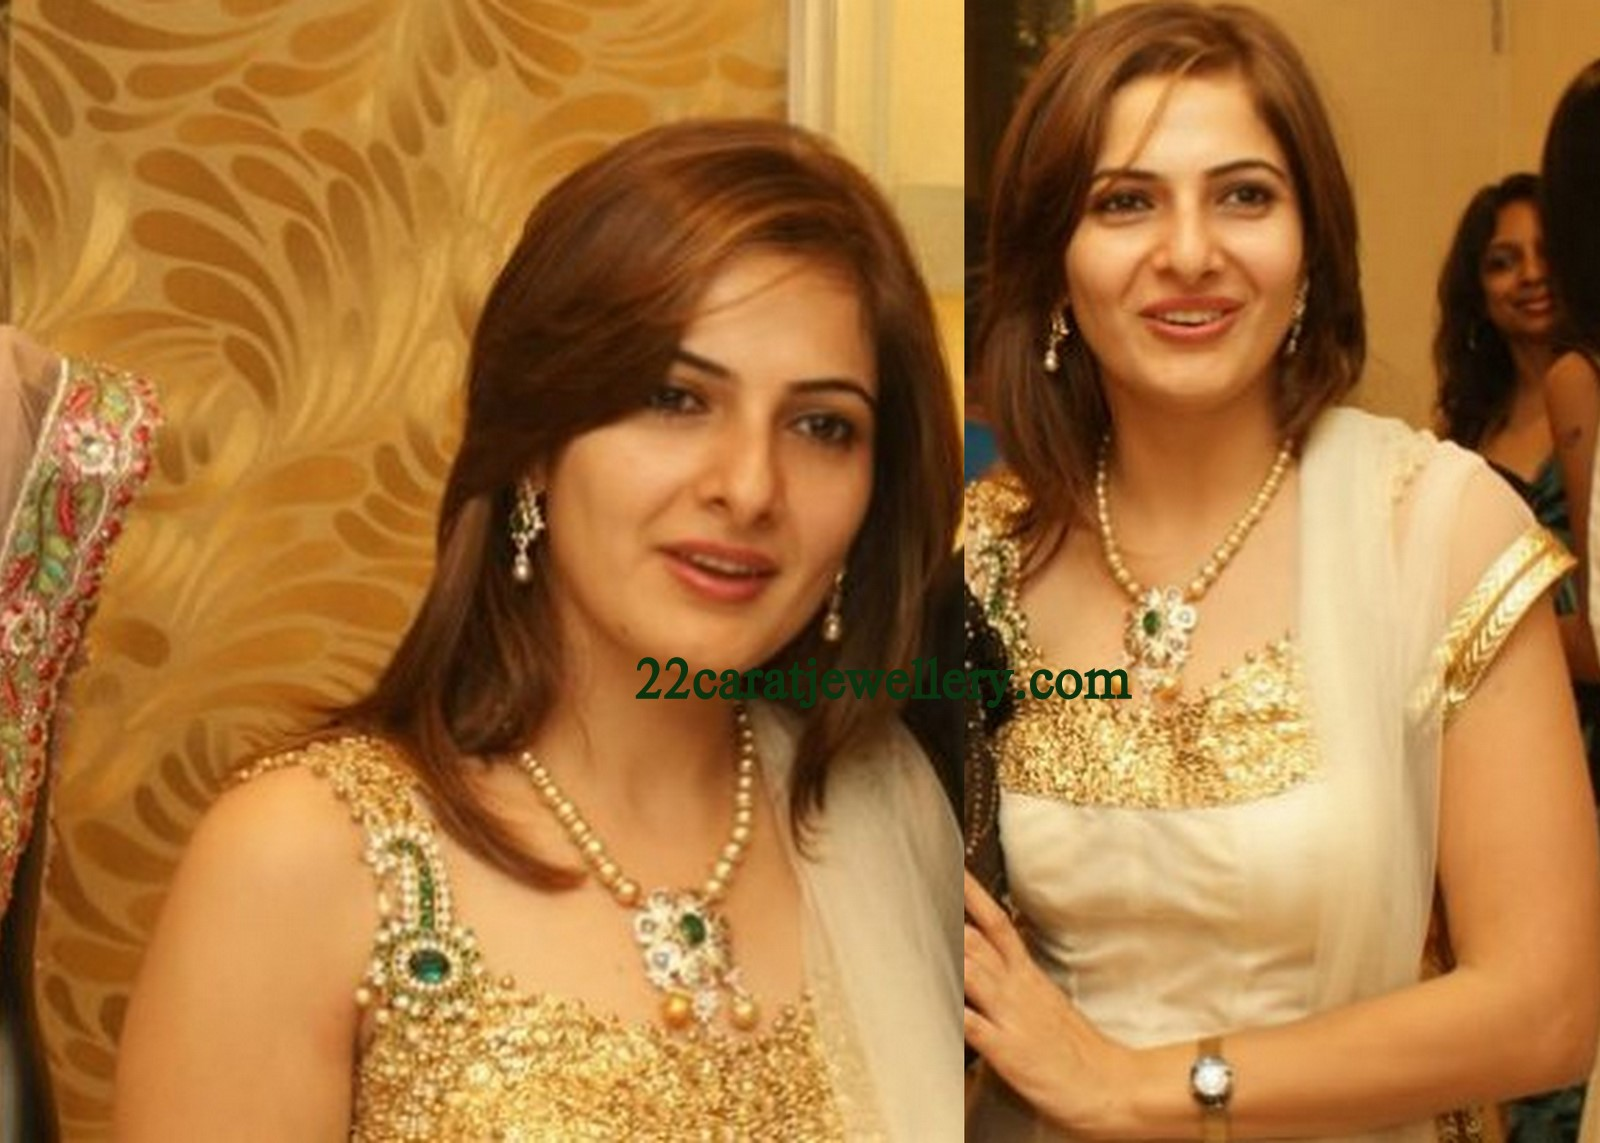 Celebrity in diamond pendant designer piece jewellery designs south indian celebrity spotted with beautiful designer seathrow pearls necklace attached with diamond pendant and pendant studded with emerald at the middle aloadofball Image collections